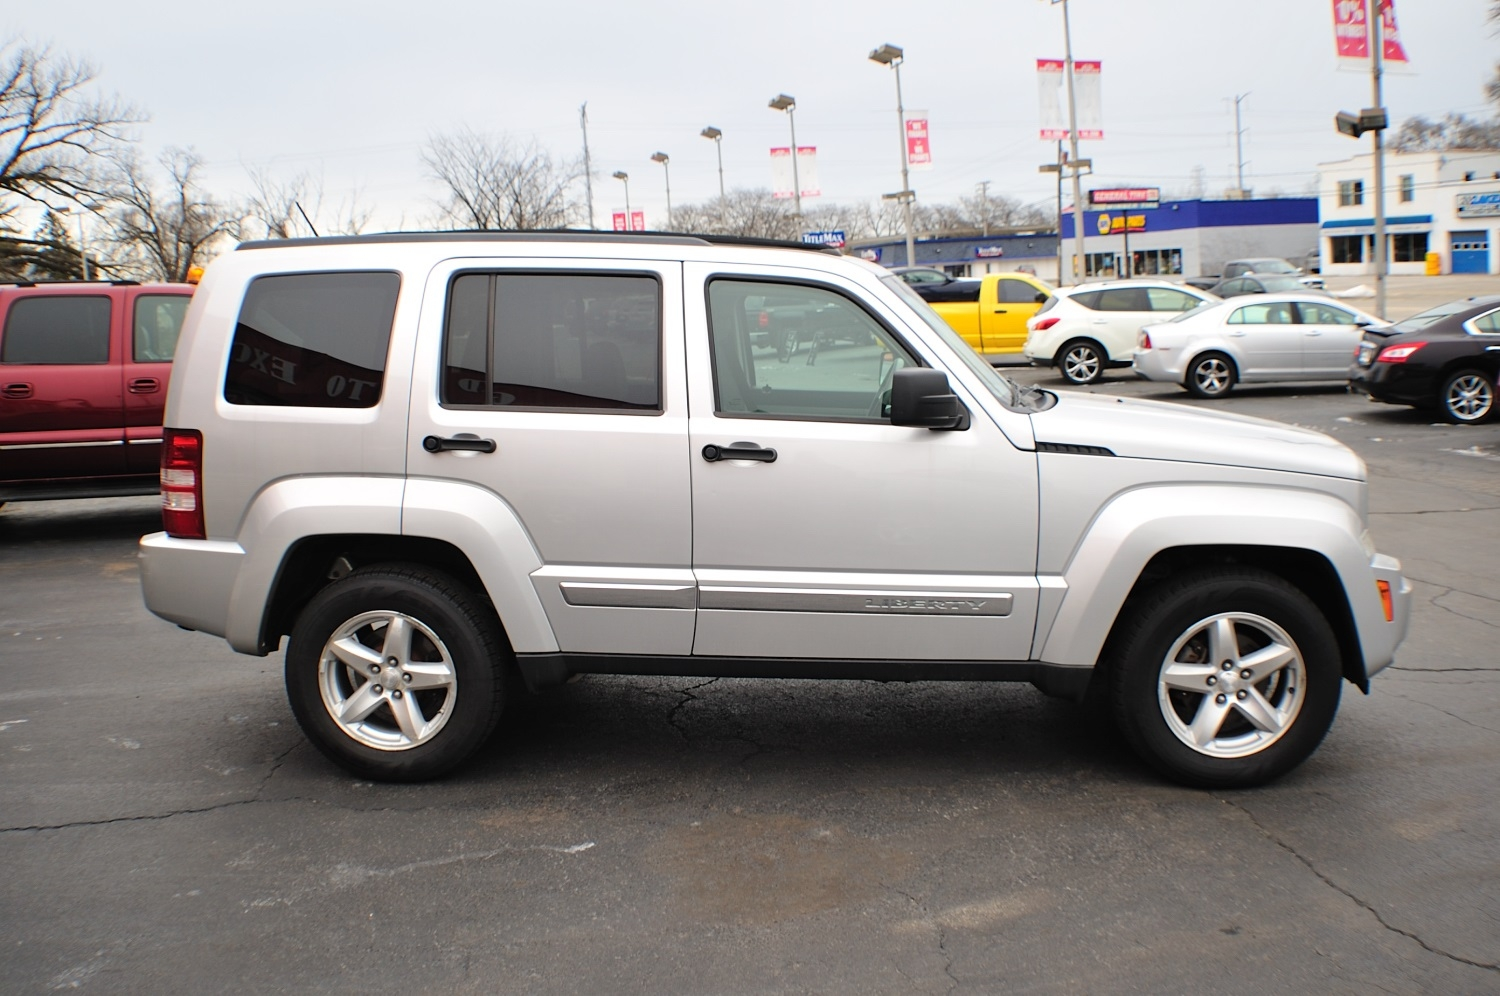 2008 Jeep Liberty Silver 4x4 Used car SUV Sale Bannockburn Barrington Beach Park